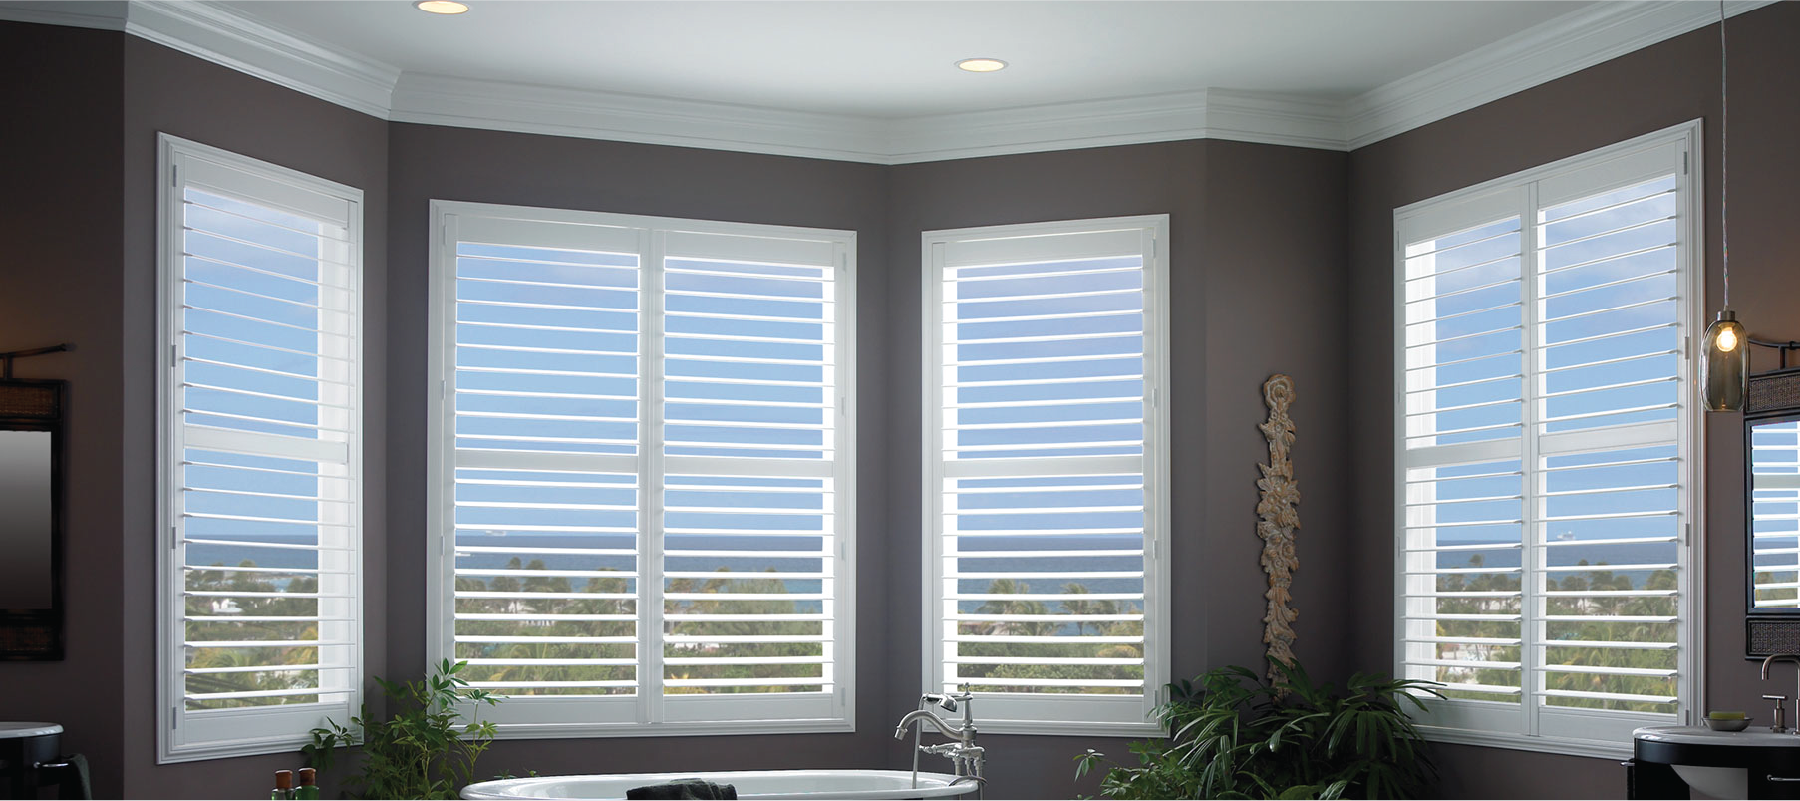 fw blinds inch pvc custom windows product en white faux wood for